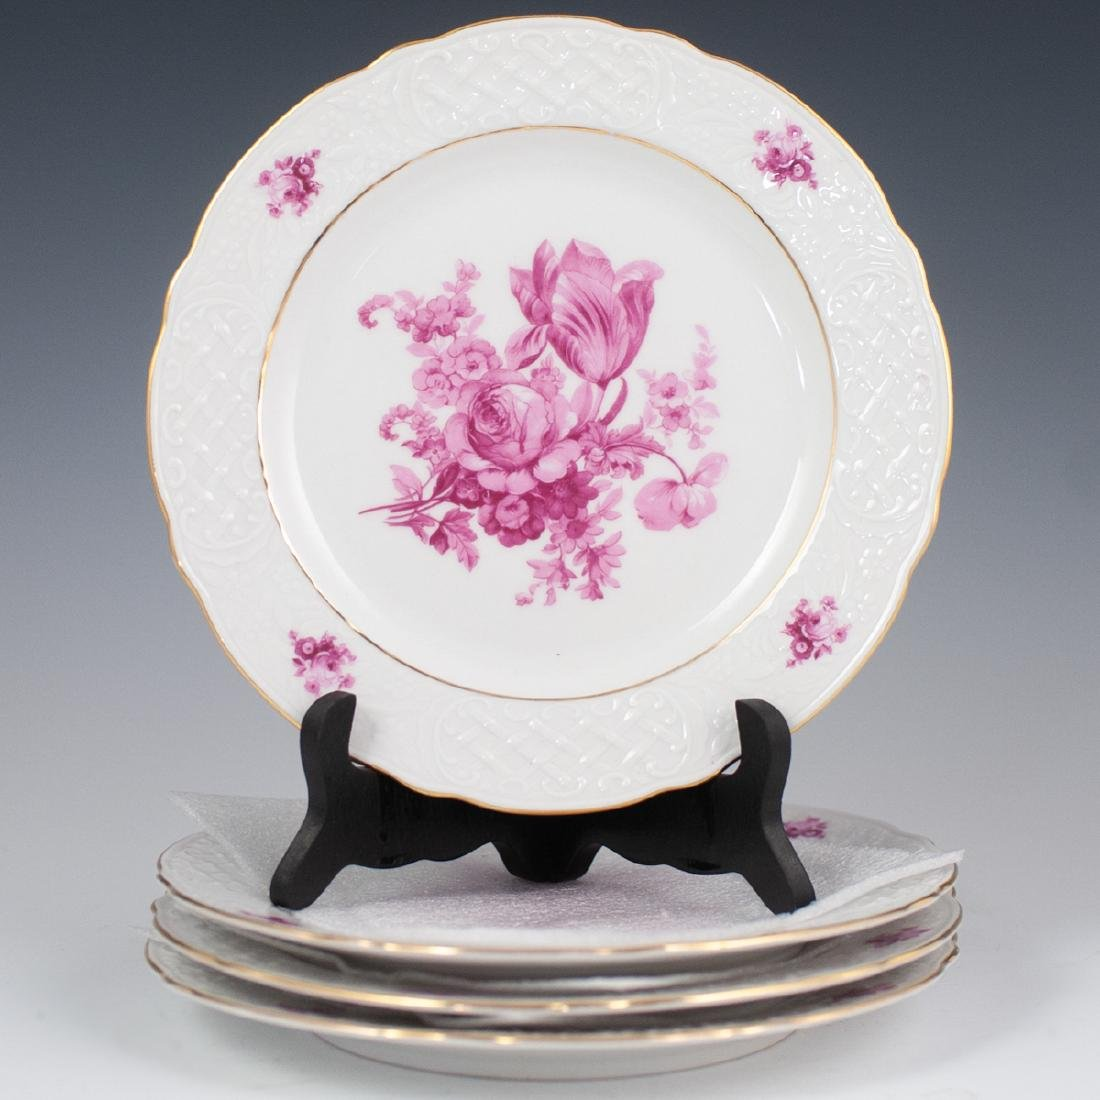 Schumann Porcelain Cocktail Plates